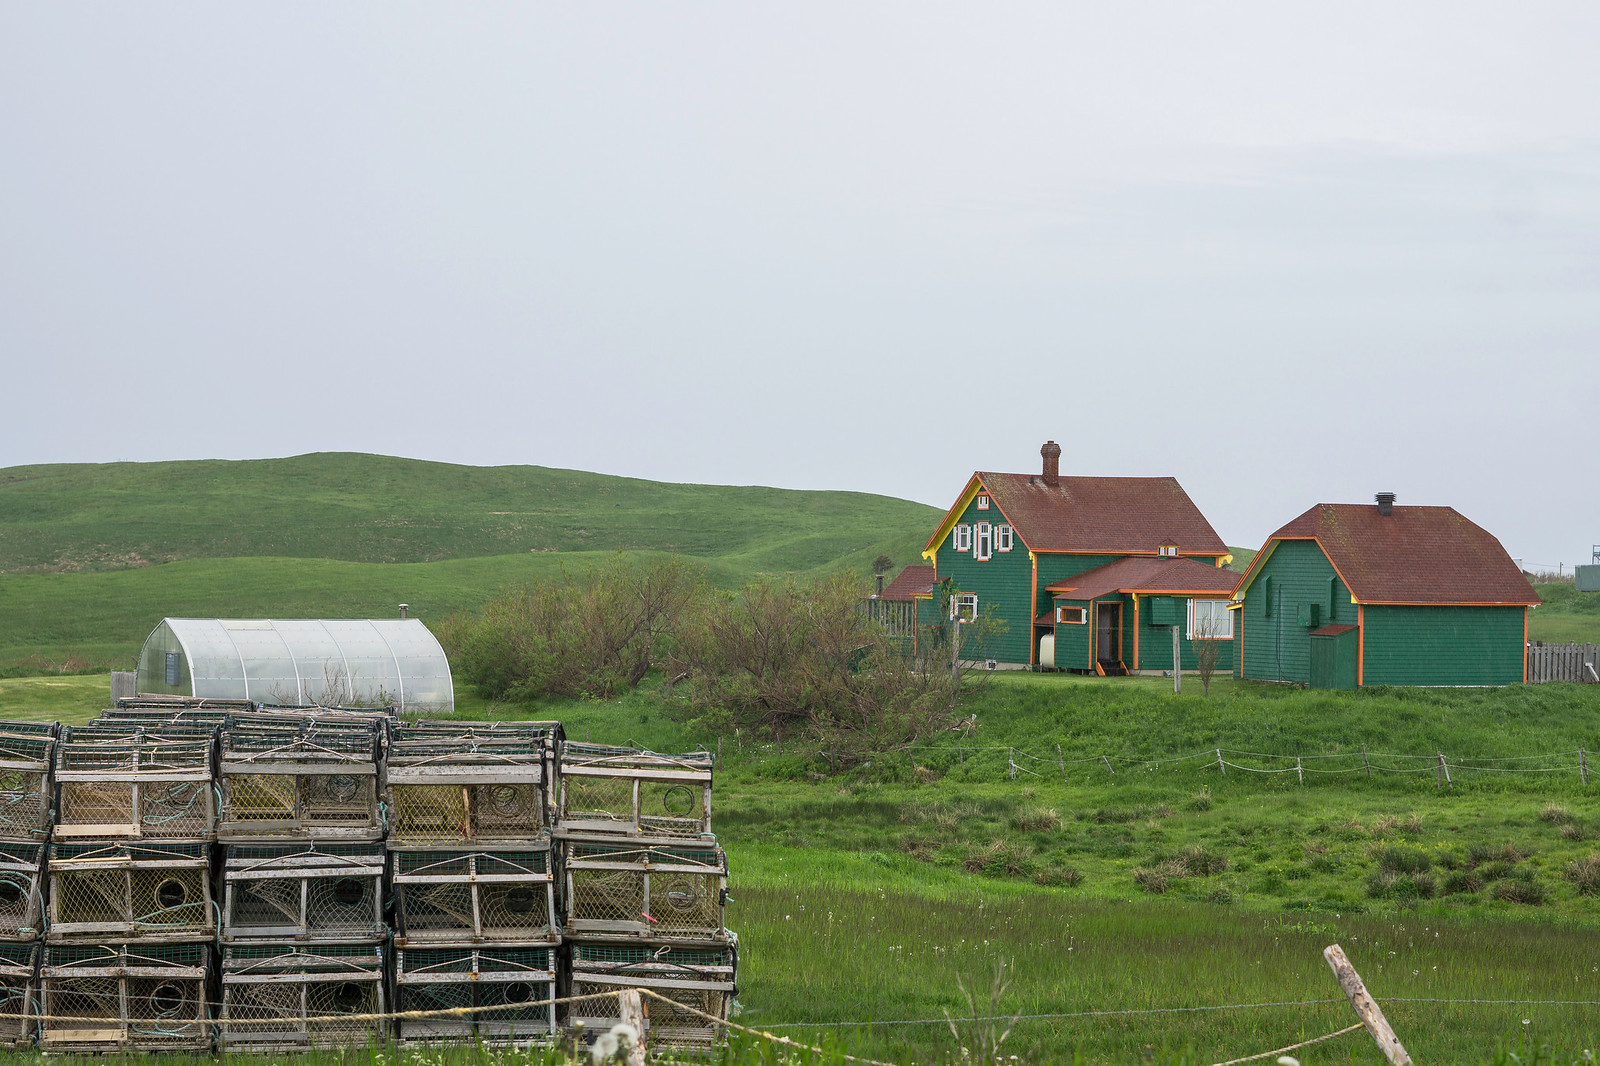 Lobster pots and a green house that almost melts into the grassy hills of Havre-aux-Maisons